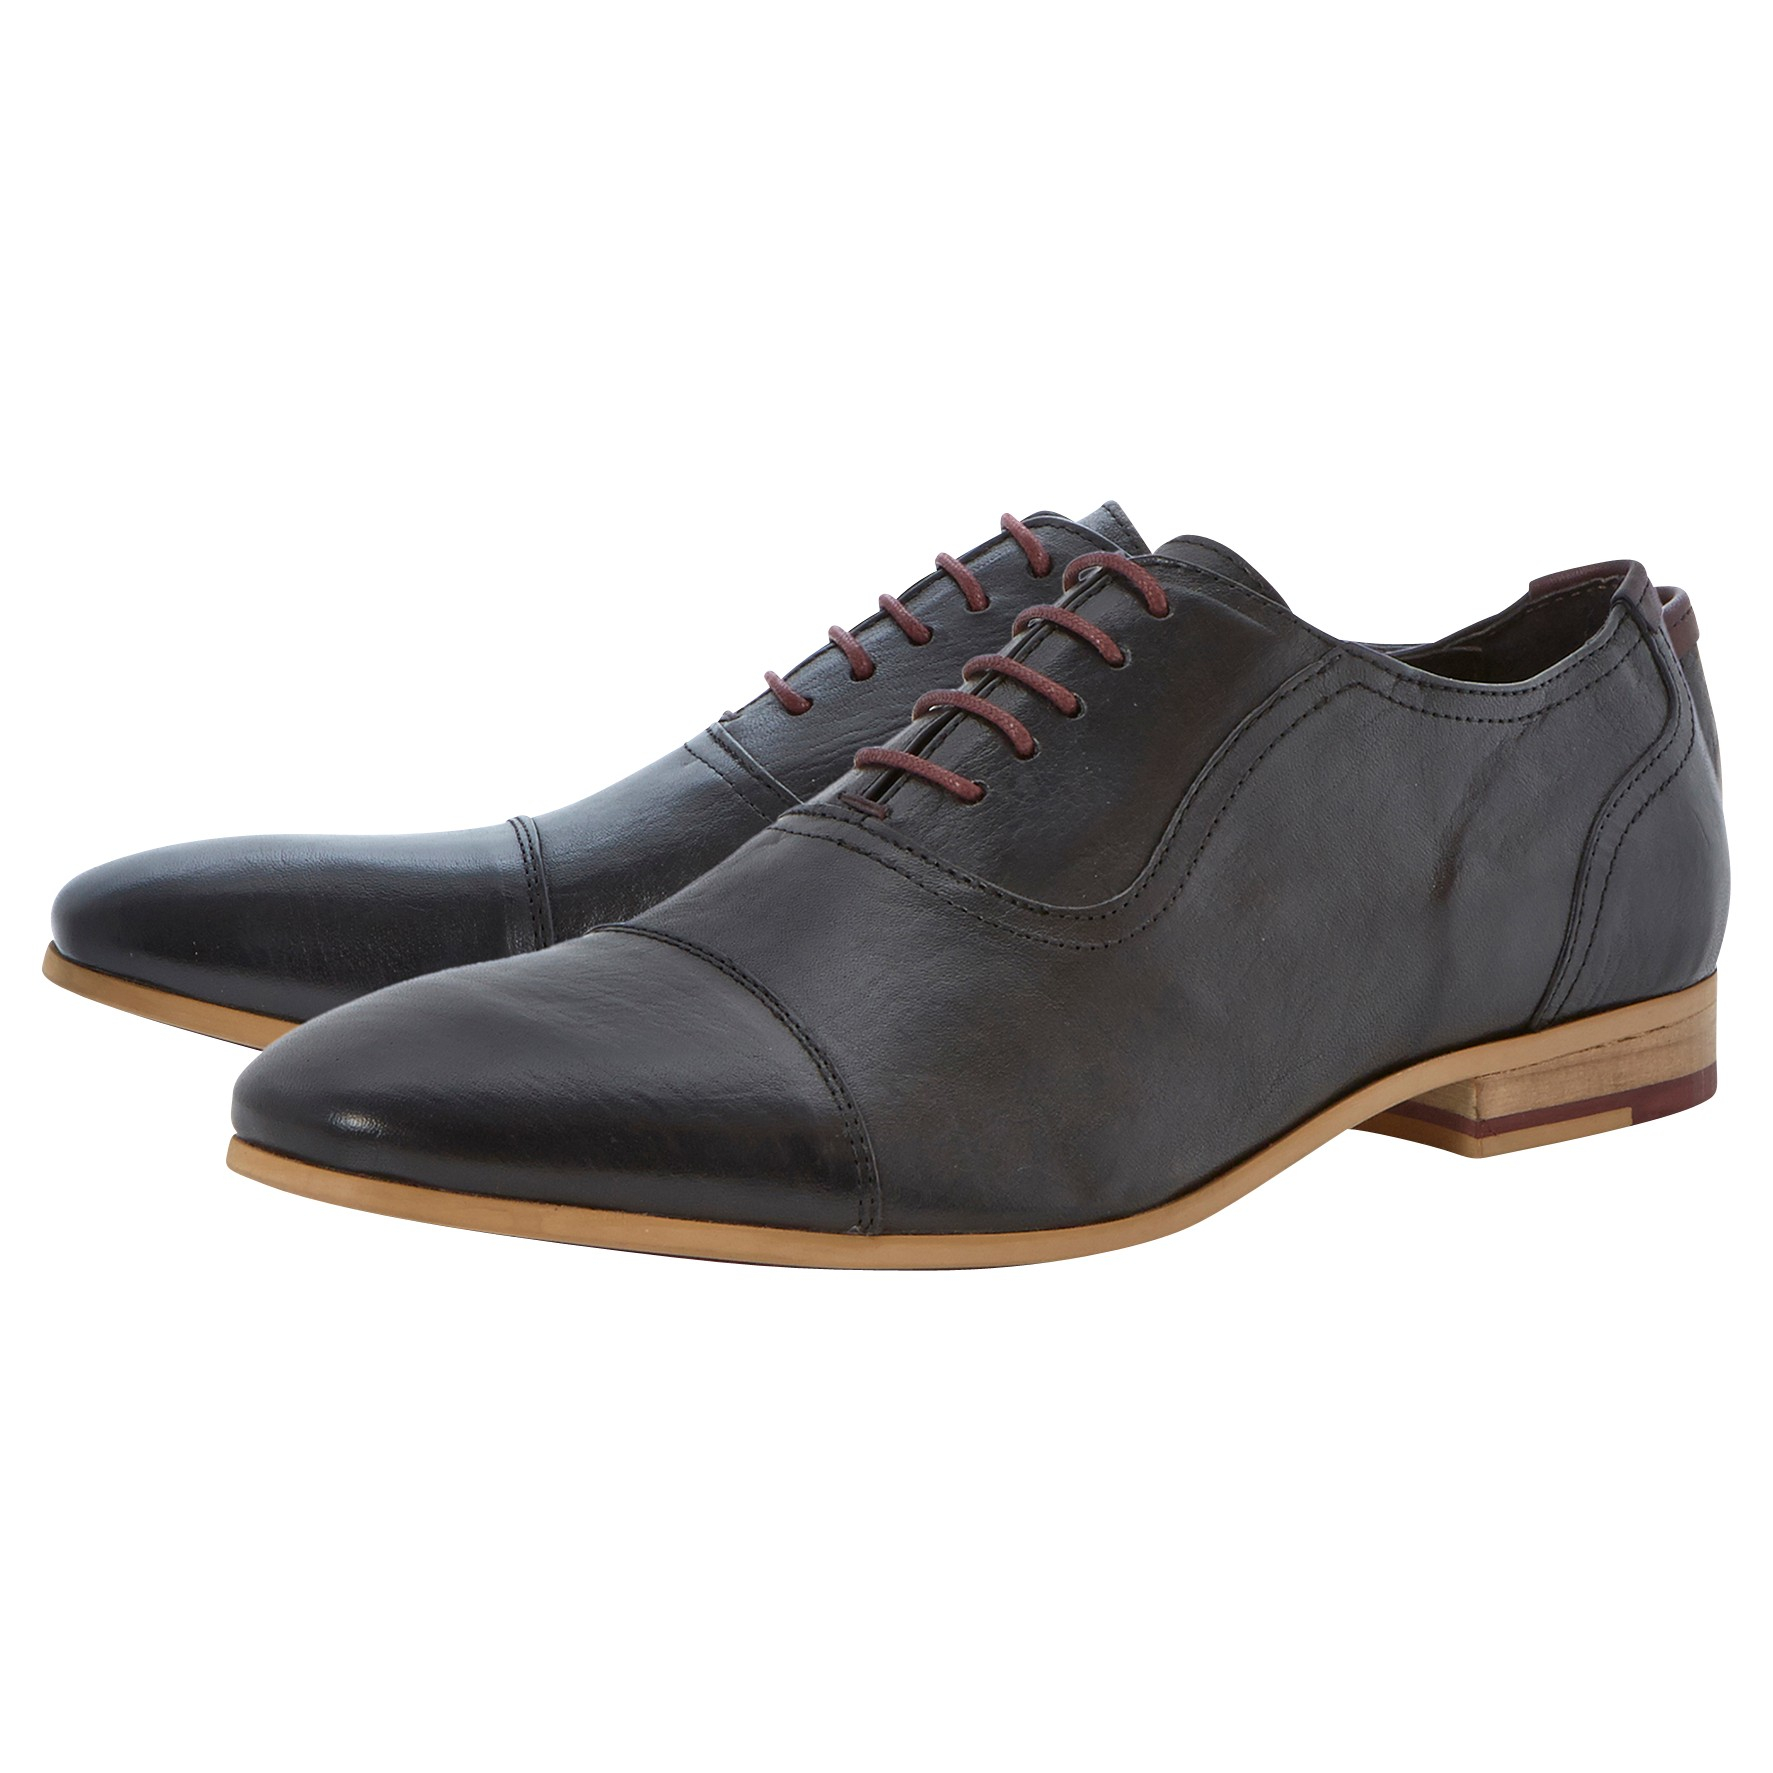 Bertie Radios Oxford Lace Up Shoes in Black for Men